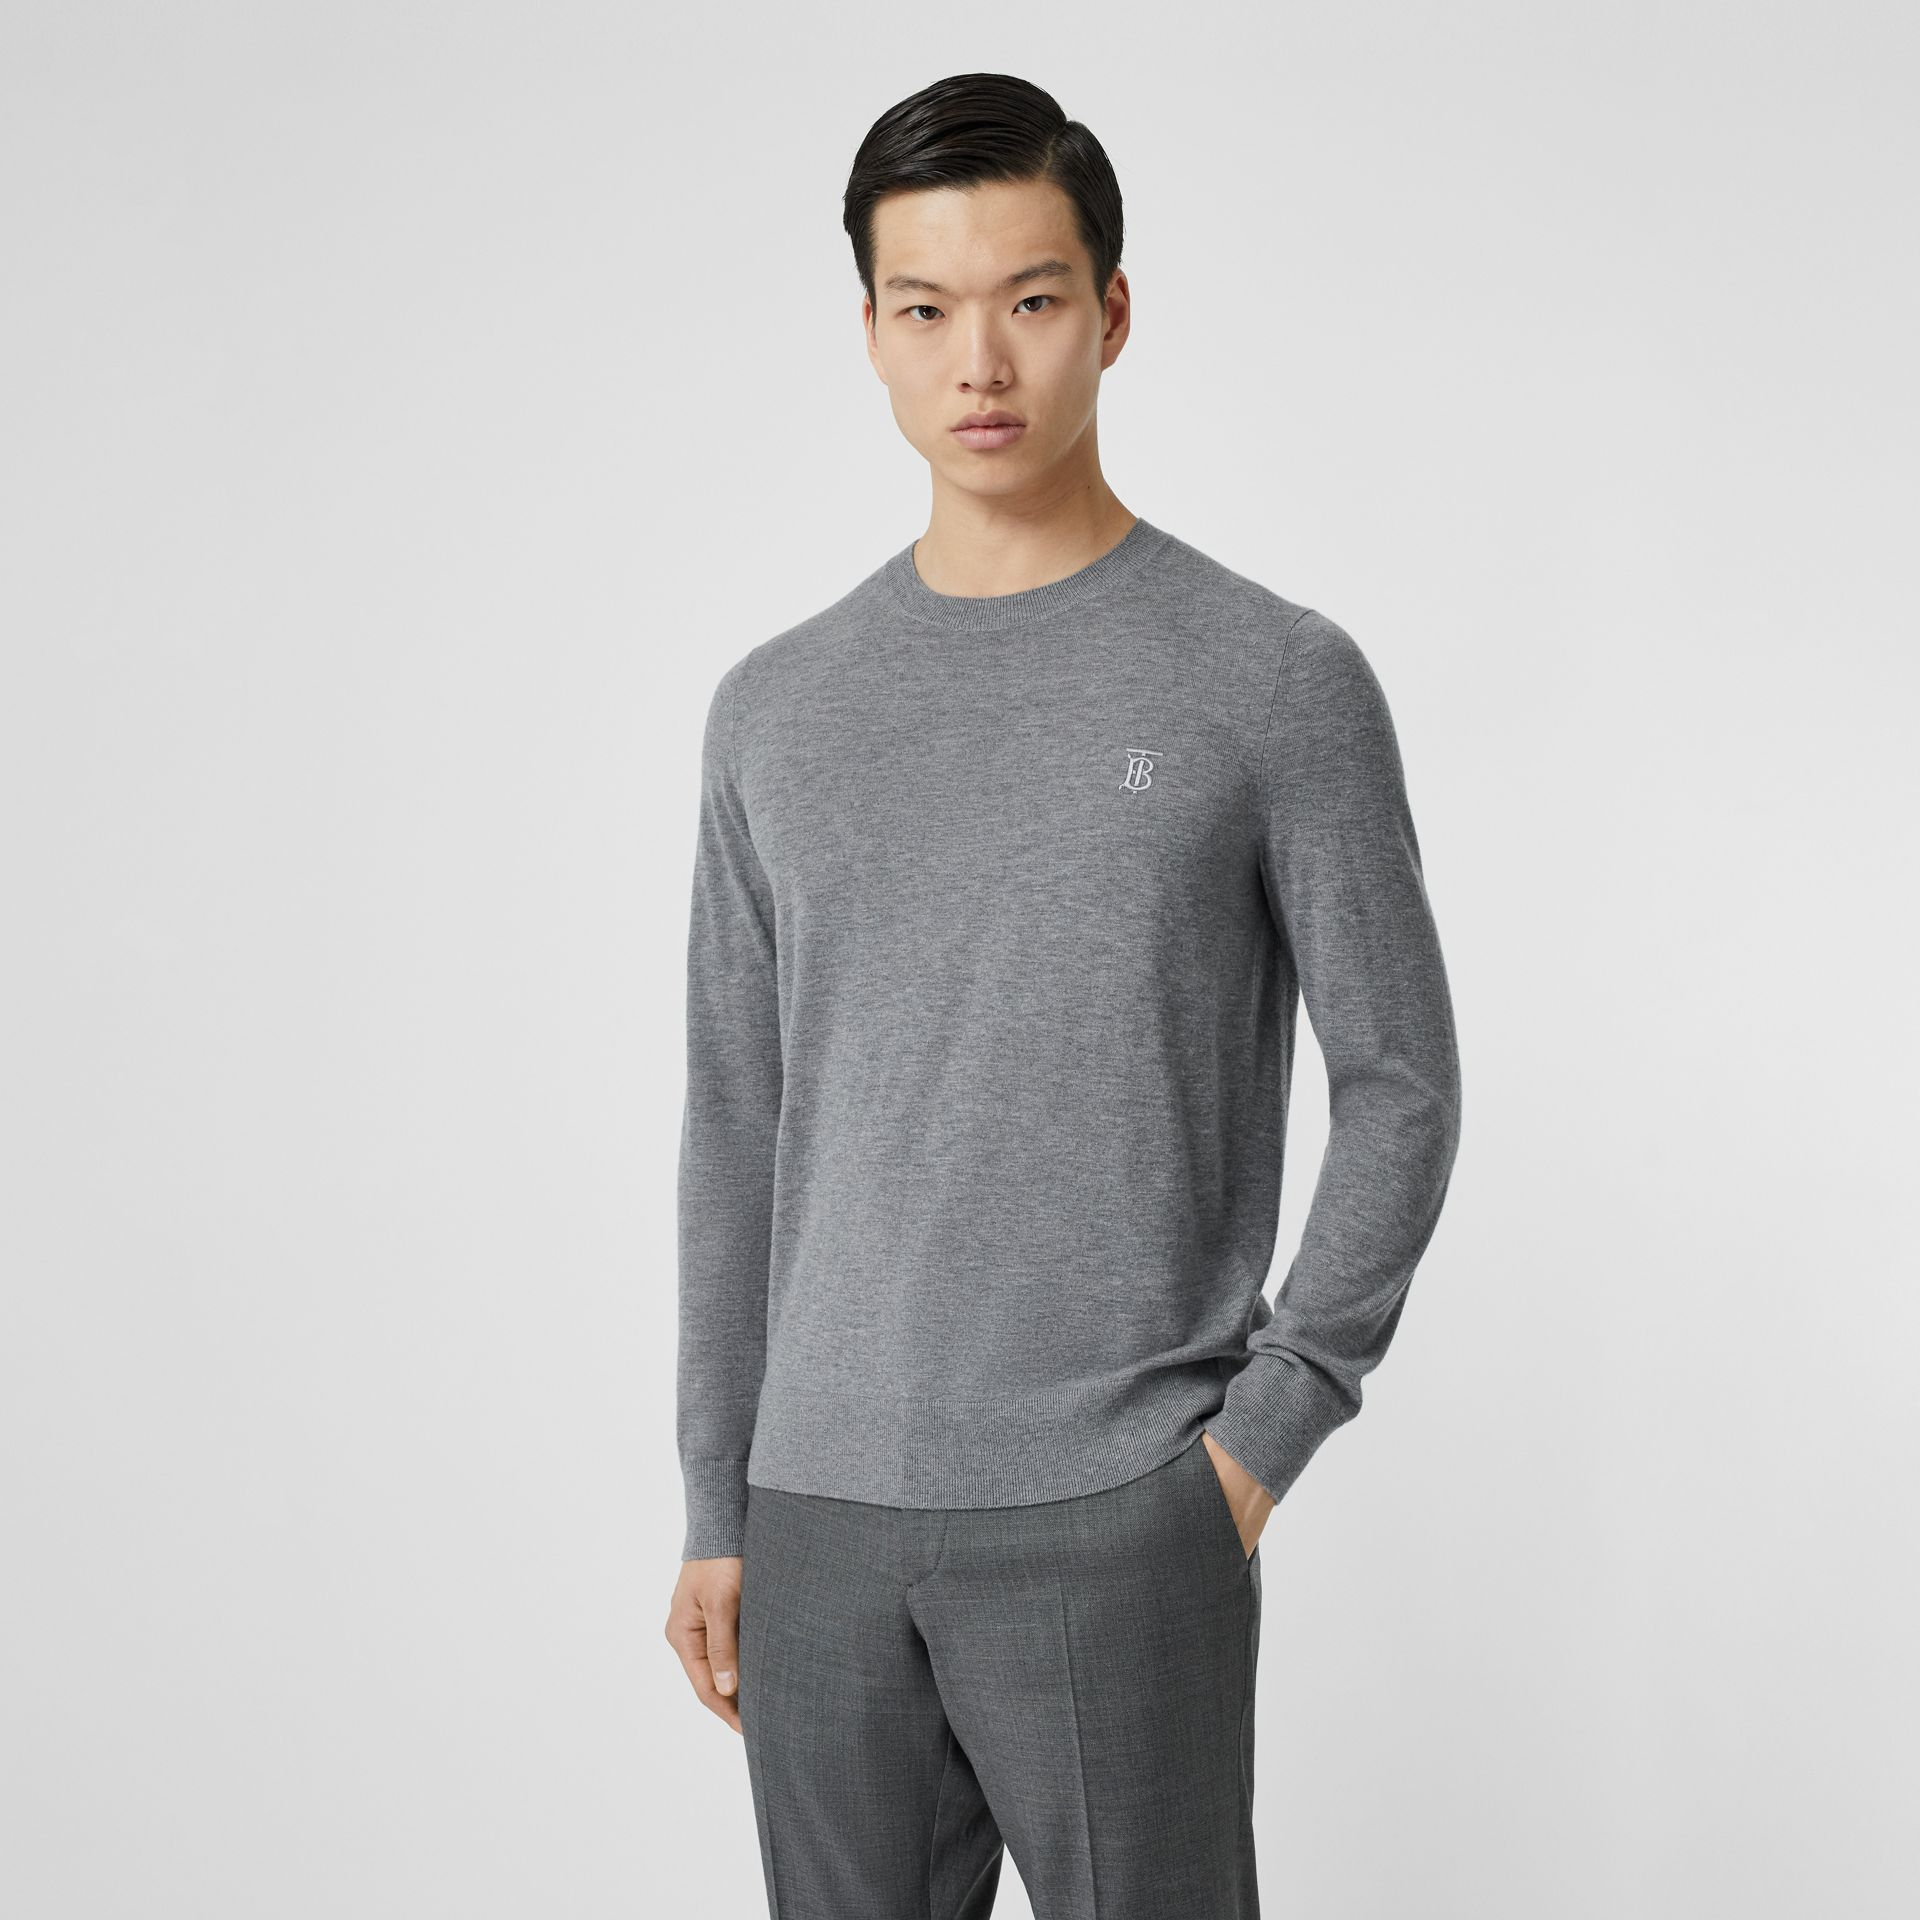 Monogram Motif Cashmere Sweater in Pale Grey Melange - Men | Burberry United Kingdom - gallery image 4